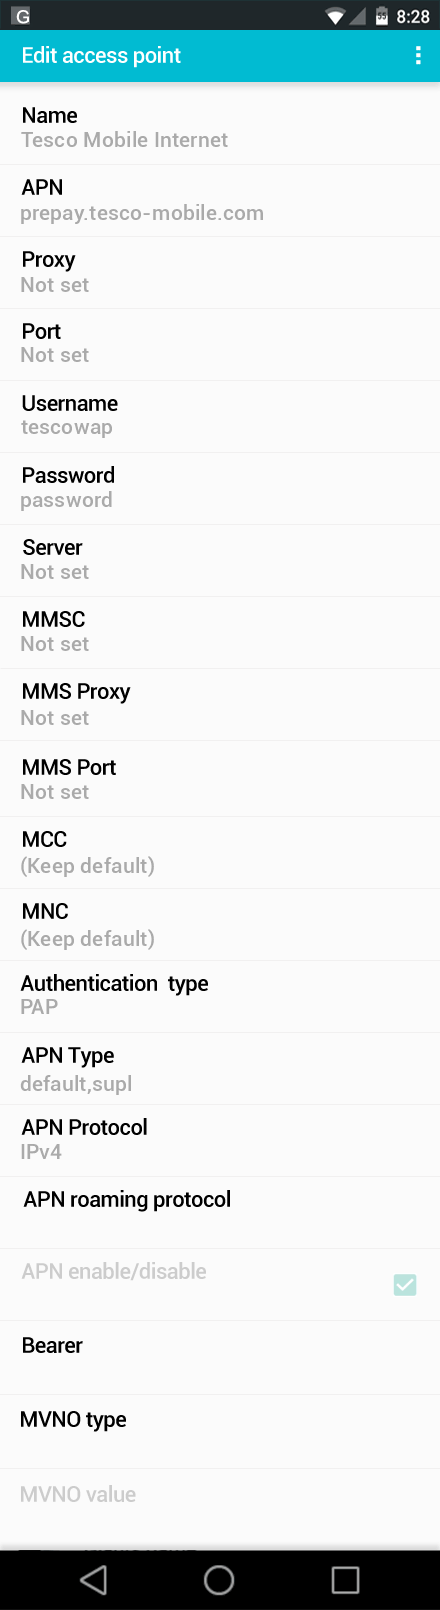 Tesco Mobile Internet APN settings for Android